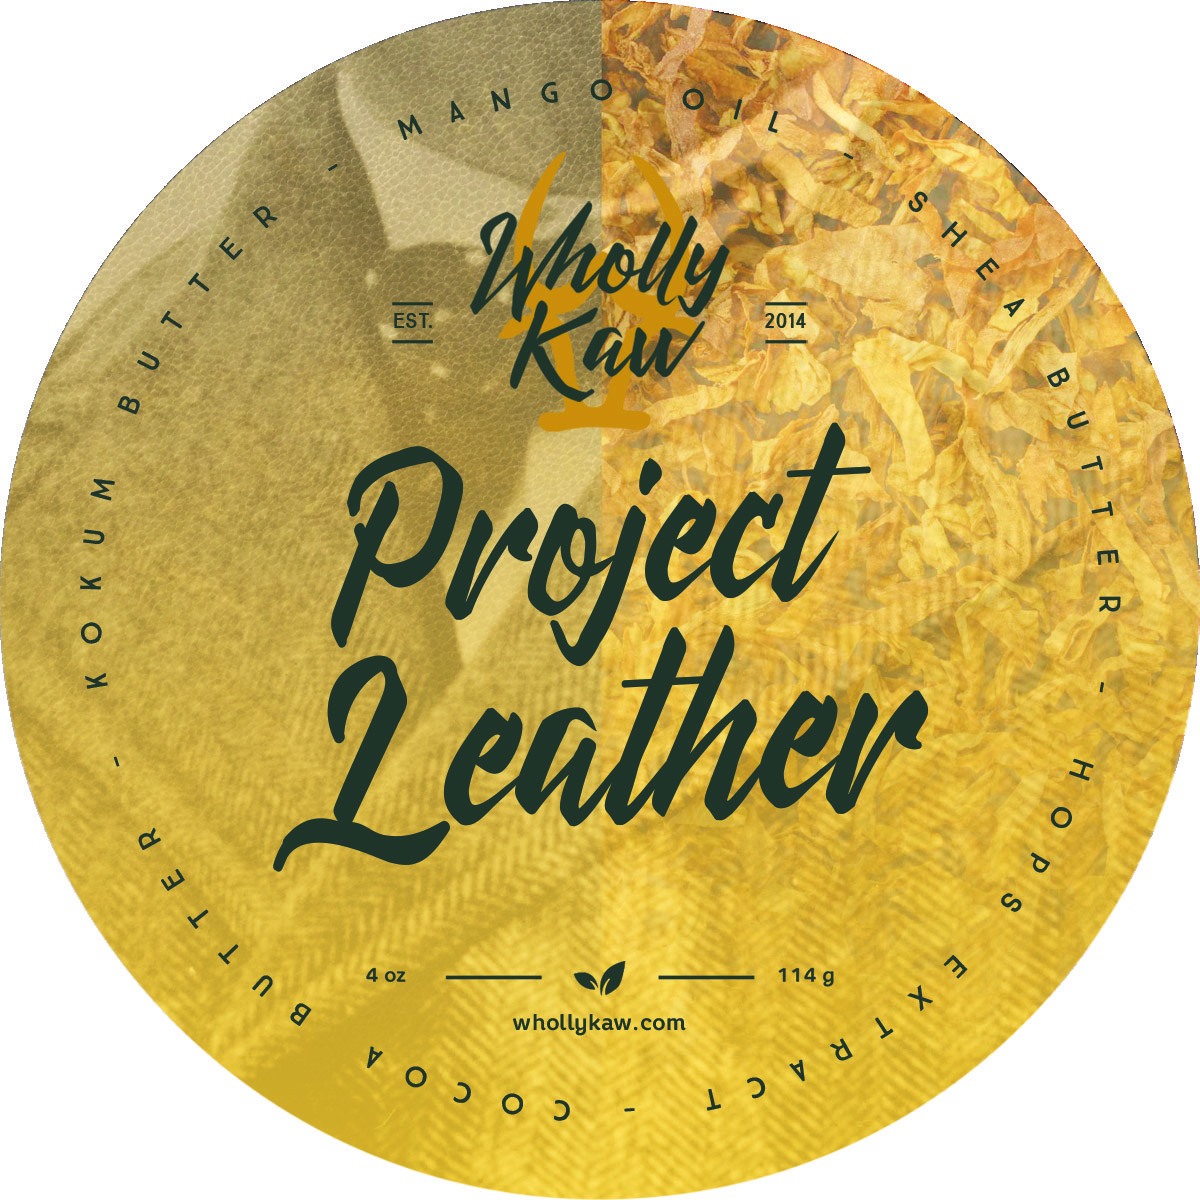 Wholly Kaw - Project Leather - Soap (Vegan) image